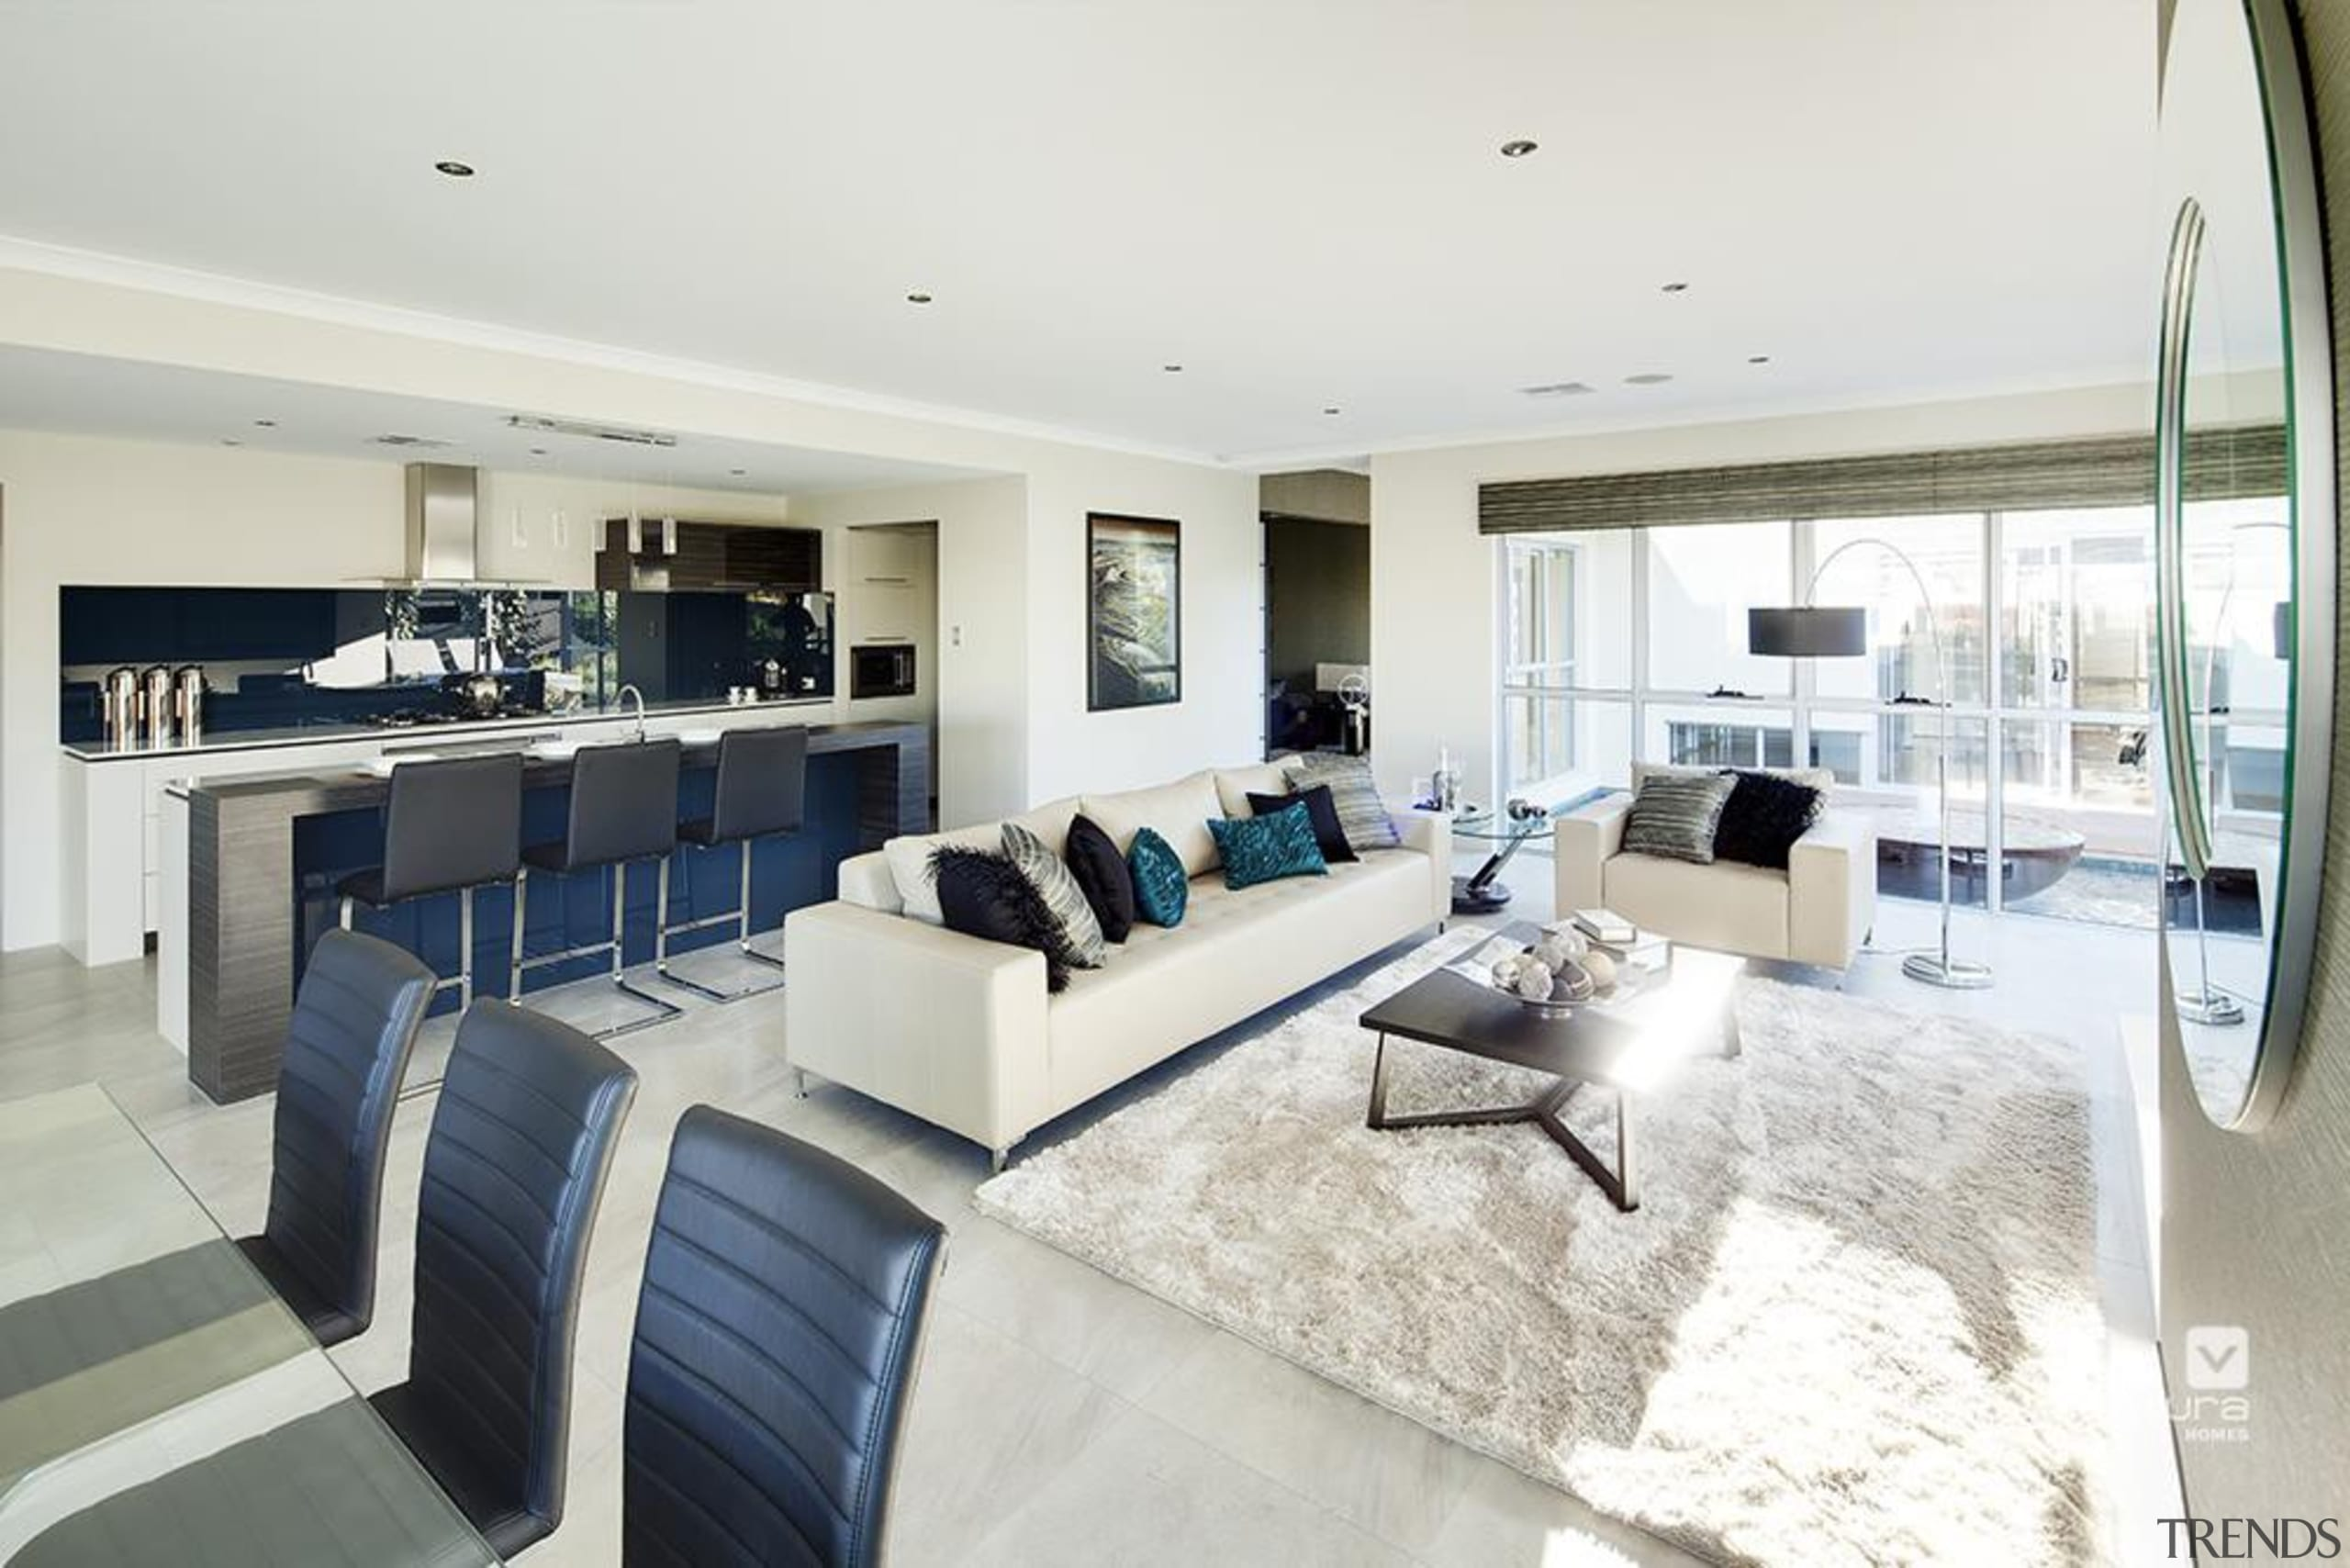 Living Room Design. - The Sentosa Display Home apartment, interior design, living room, penthouse apartment, property, real estate, white